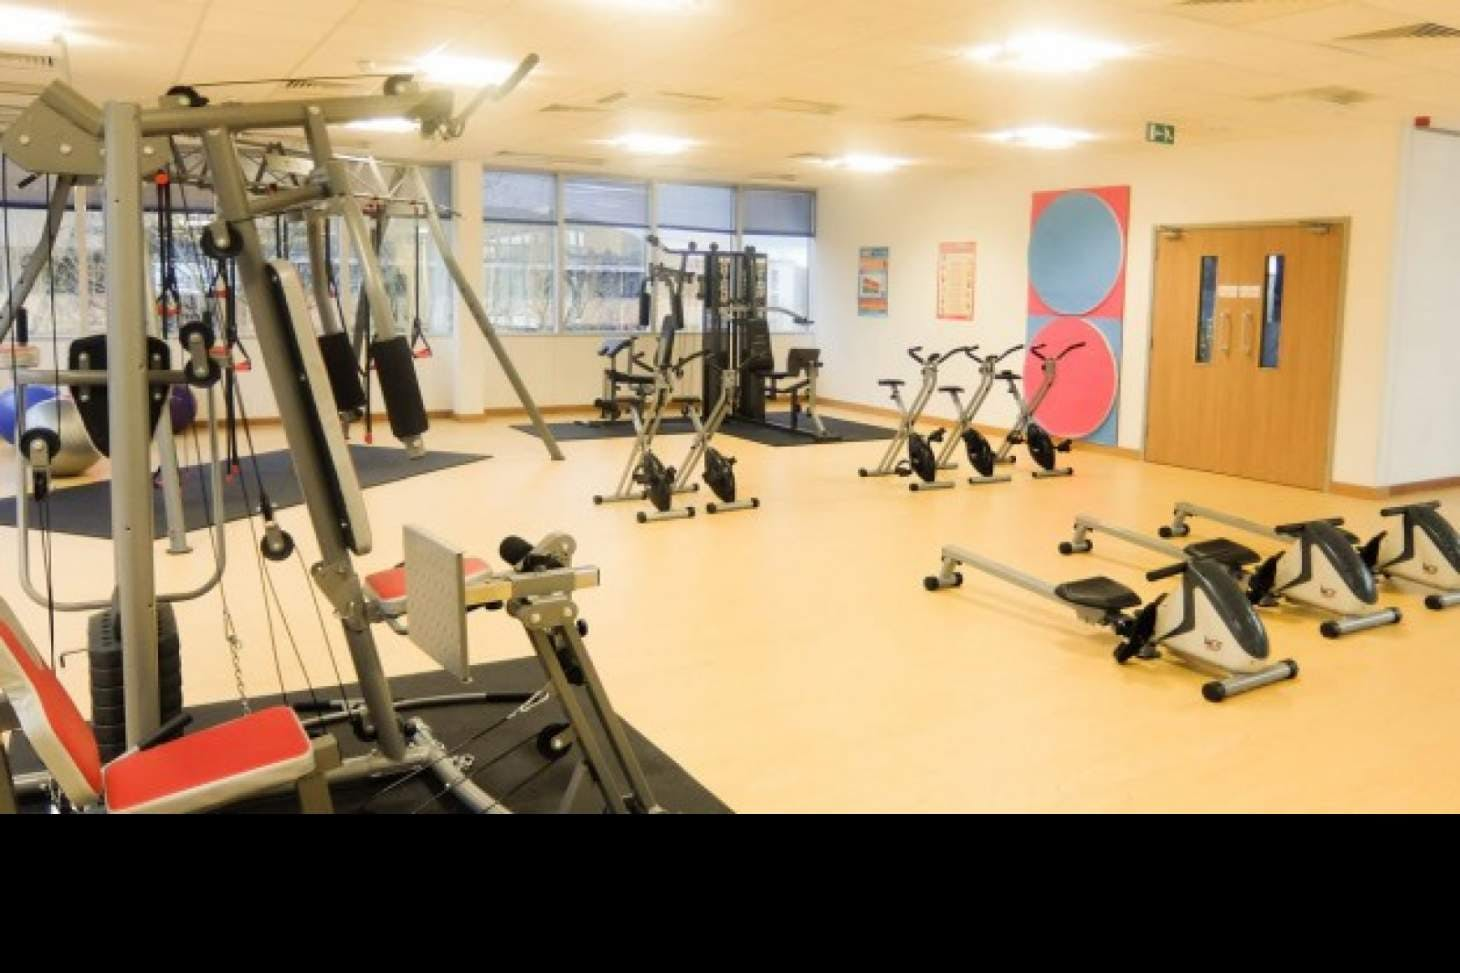 Elstree University Technical College Indoor gym